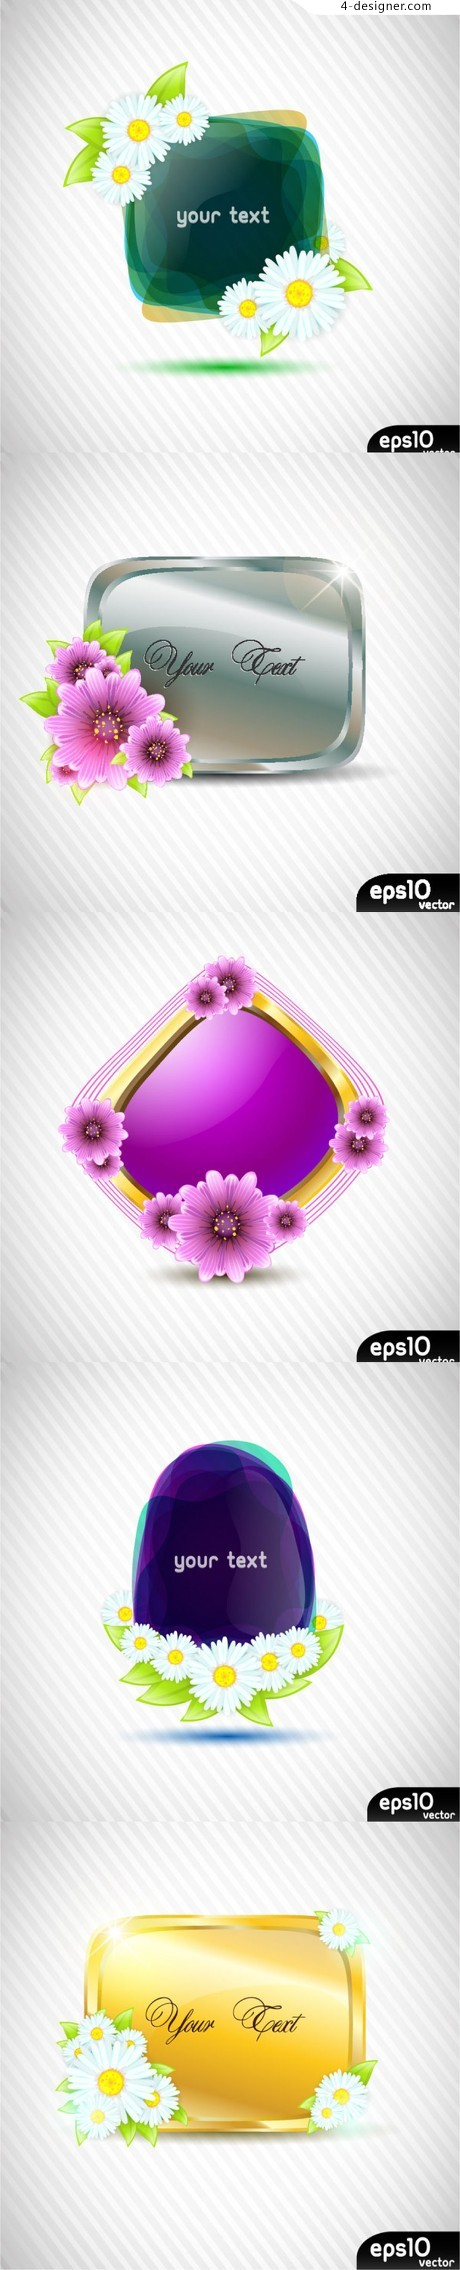 Flowers and texture border vector material